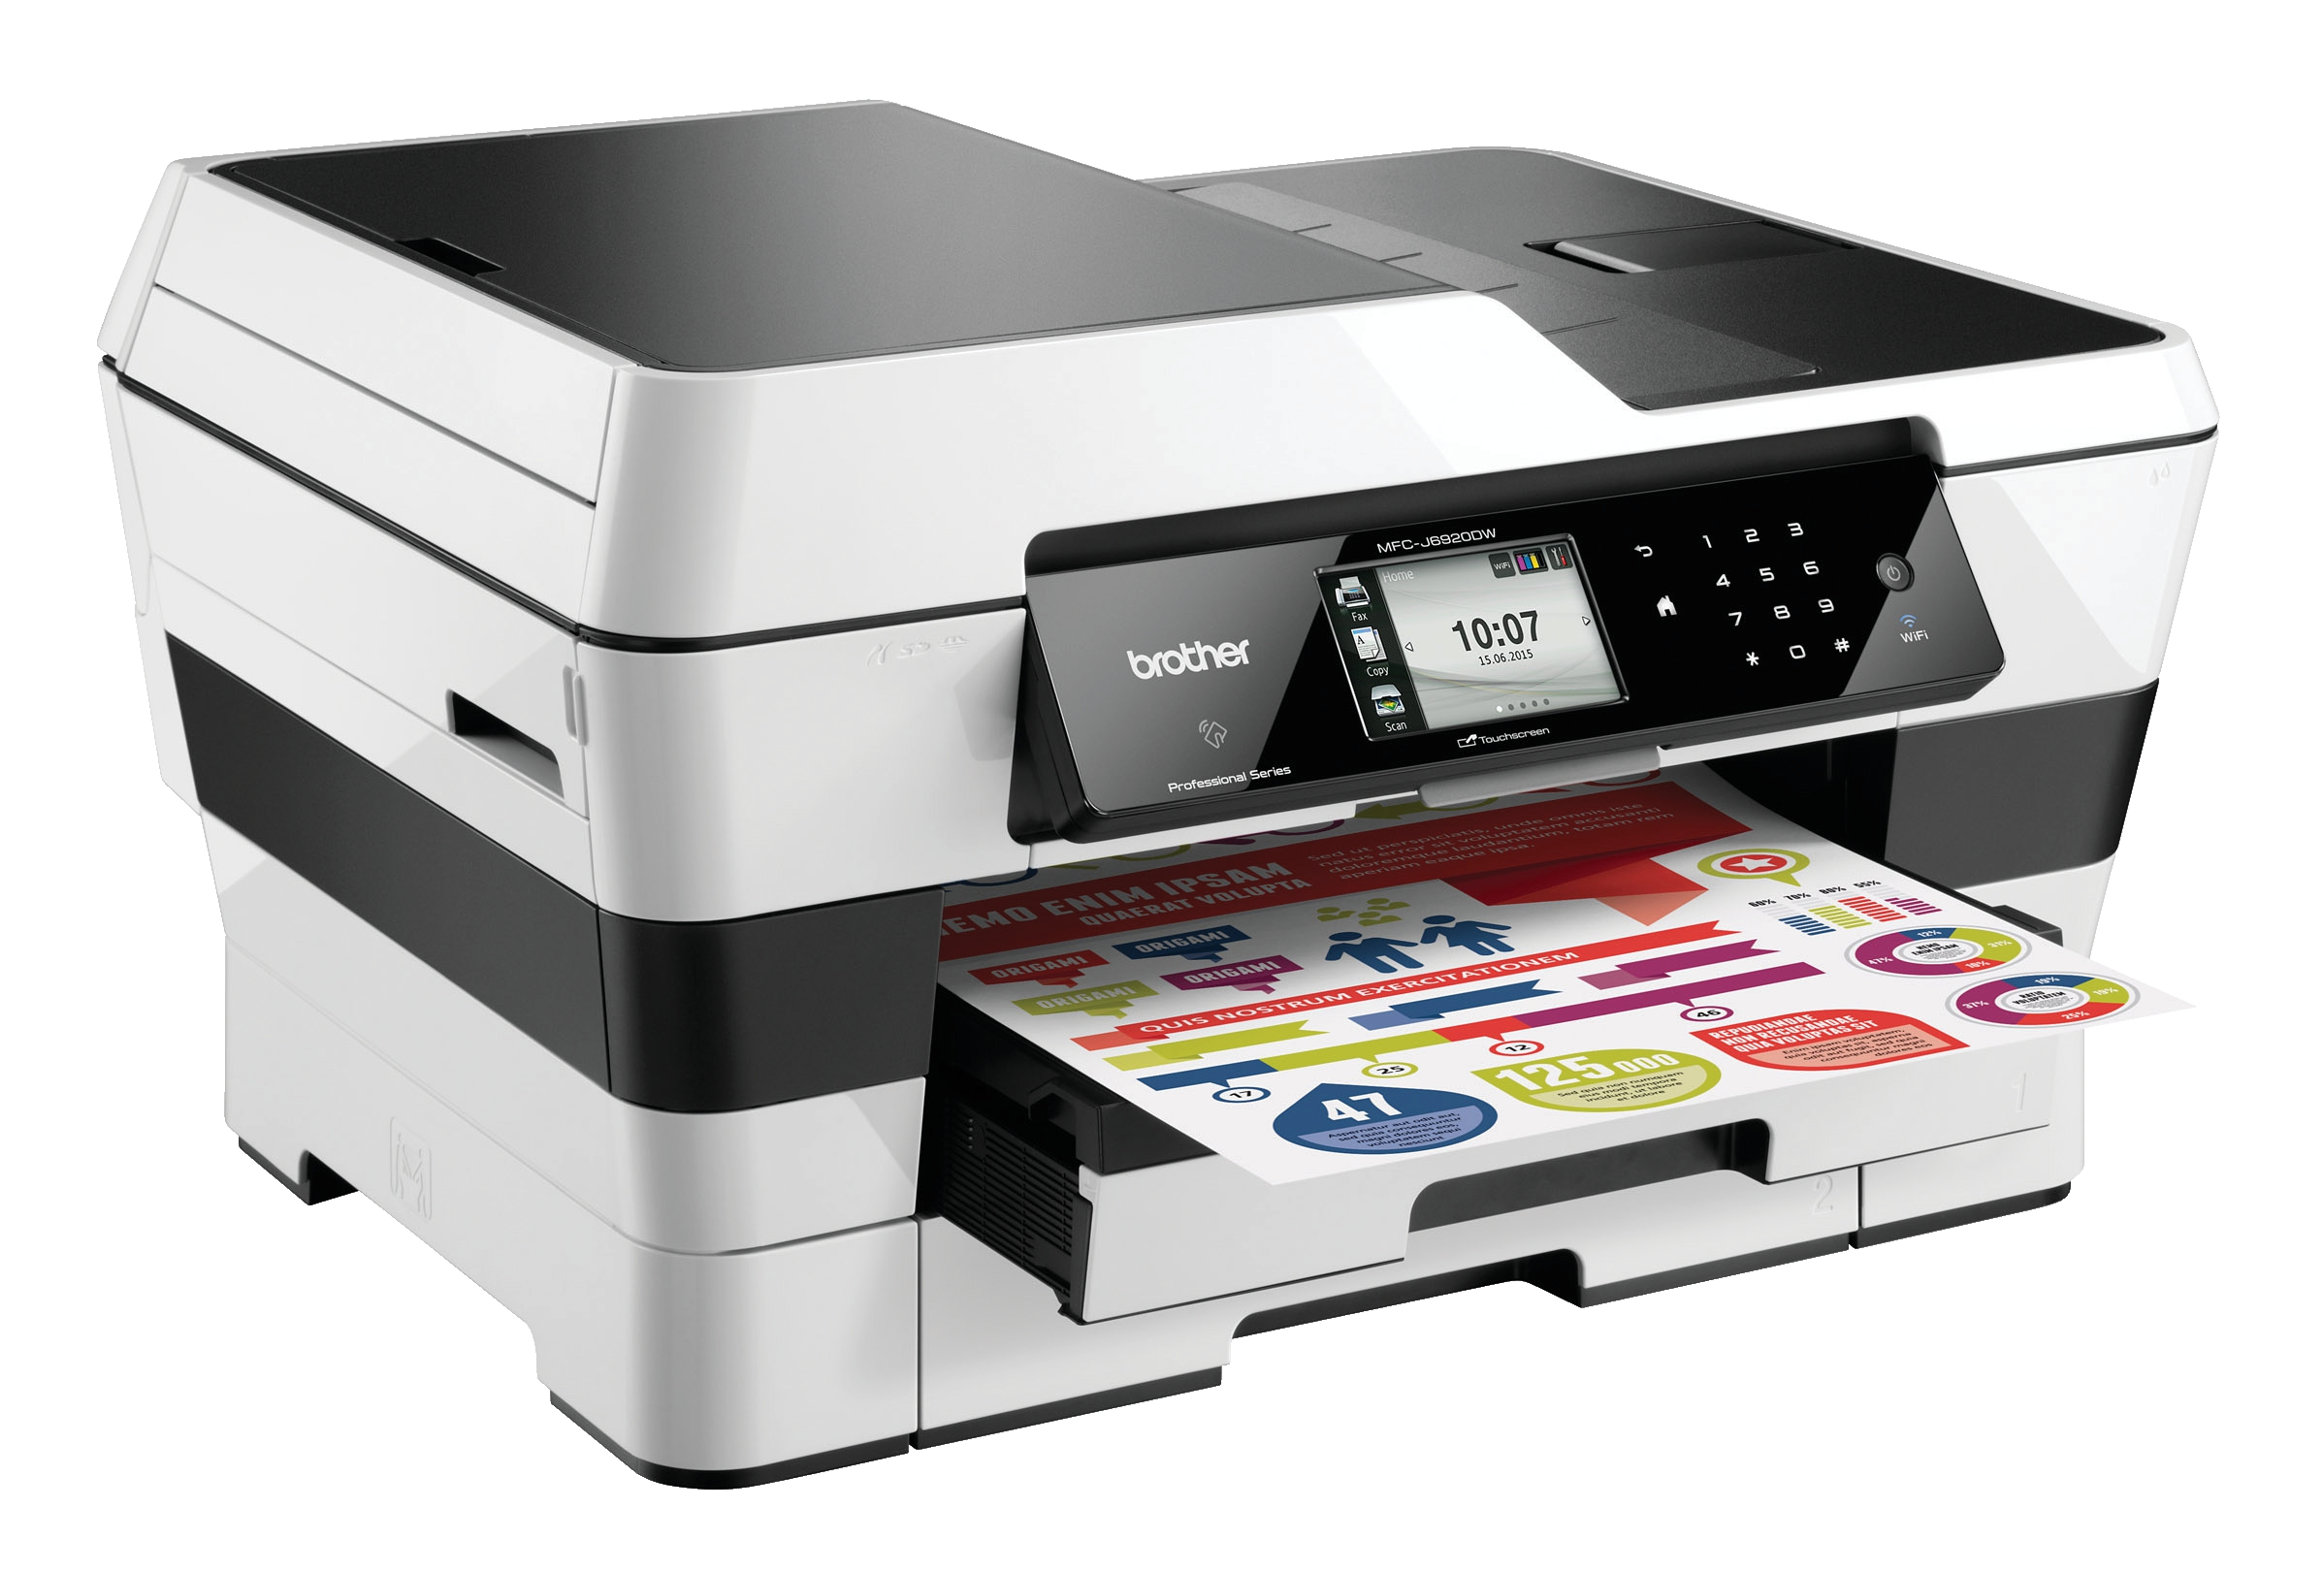 Brother MFC-J6920DW A3 Inkjet All-in-One Printer with Fax Duplex Wireless Extra Tray White (Pack of 1) MFCJ6920DW